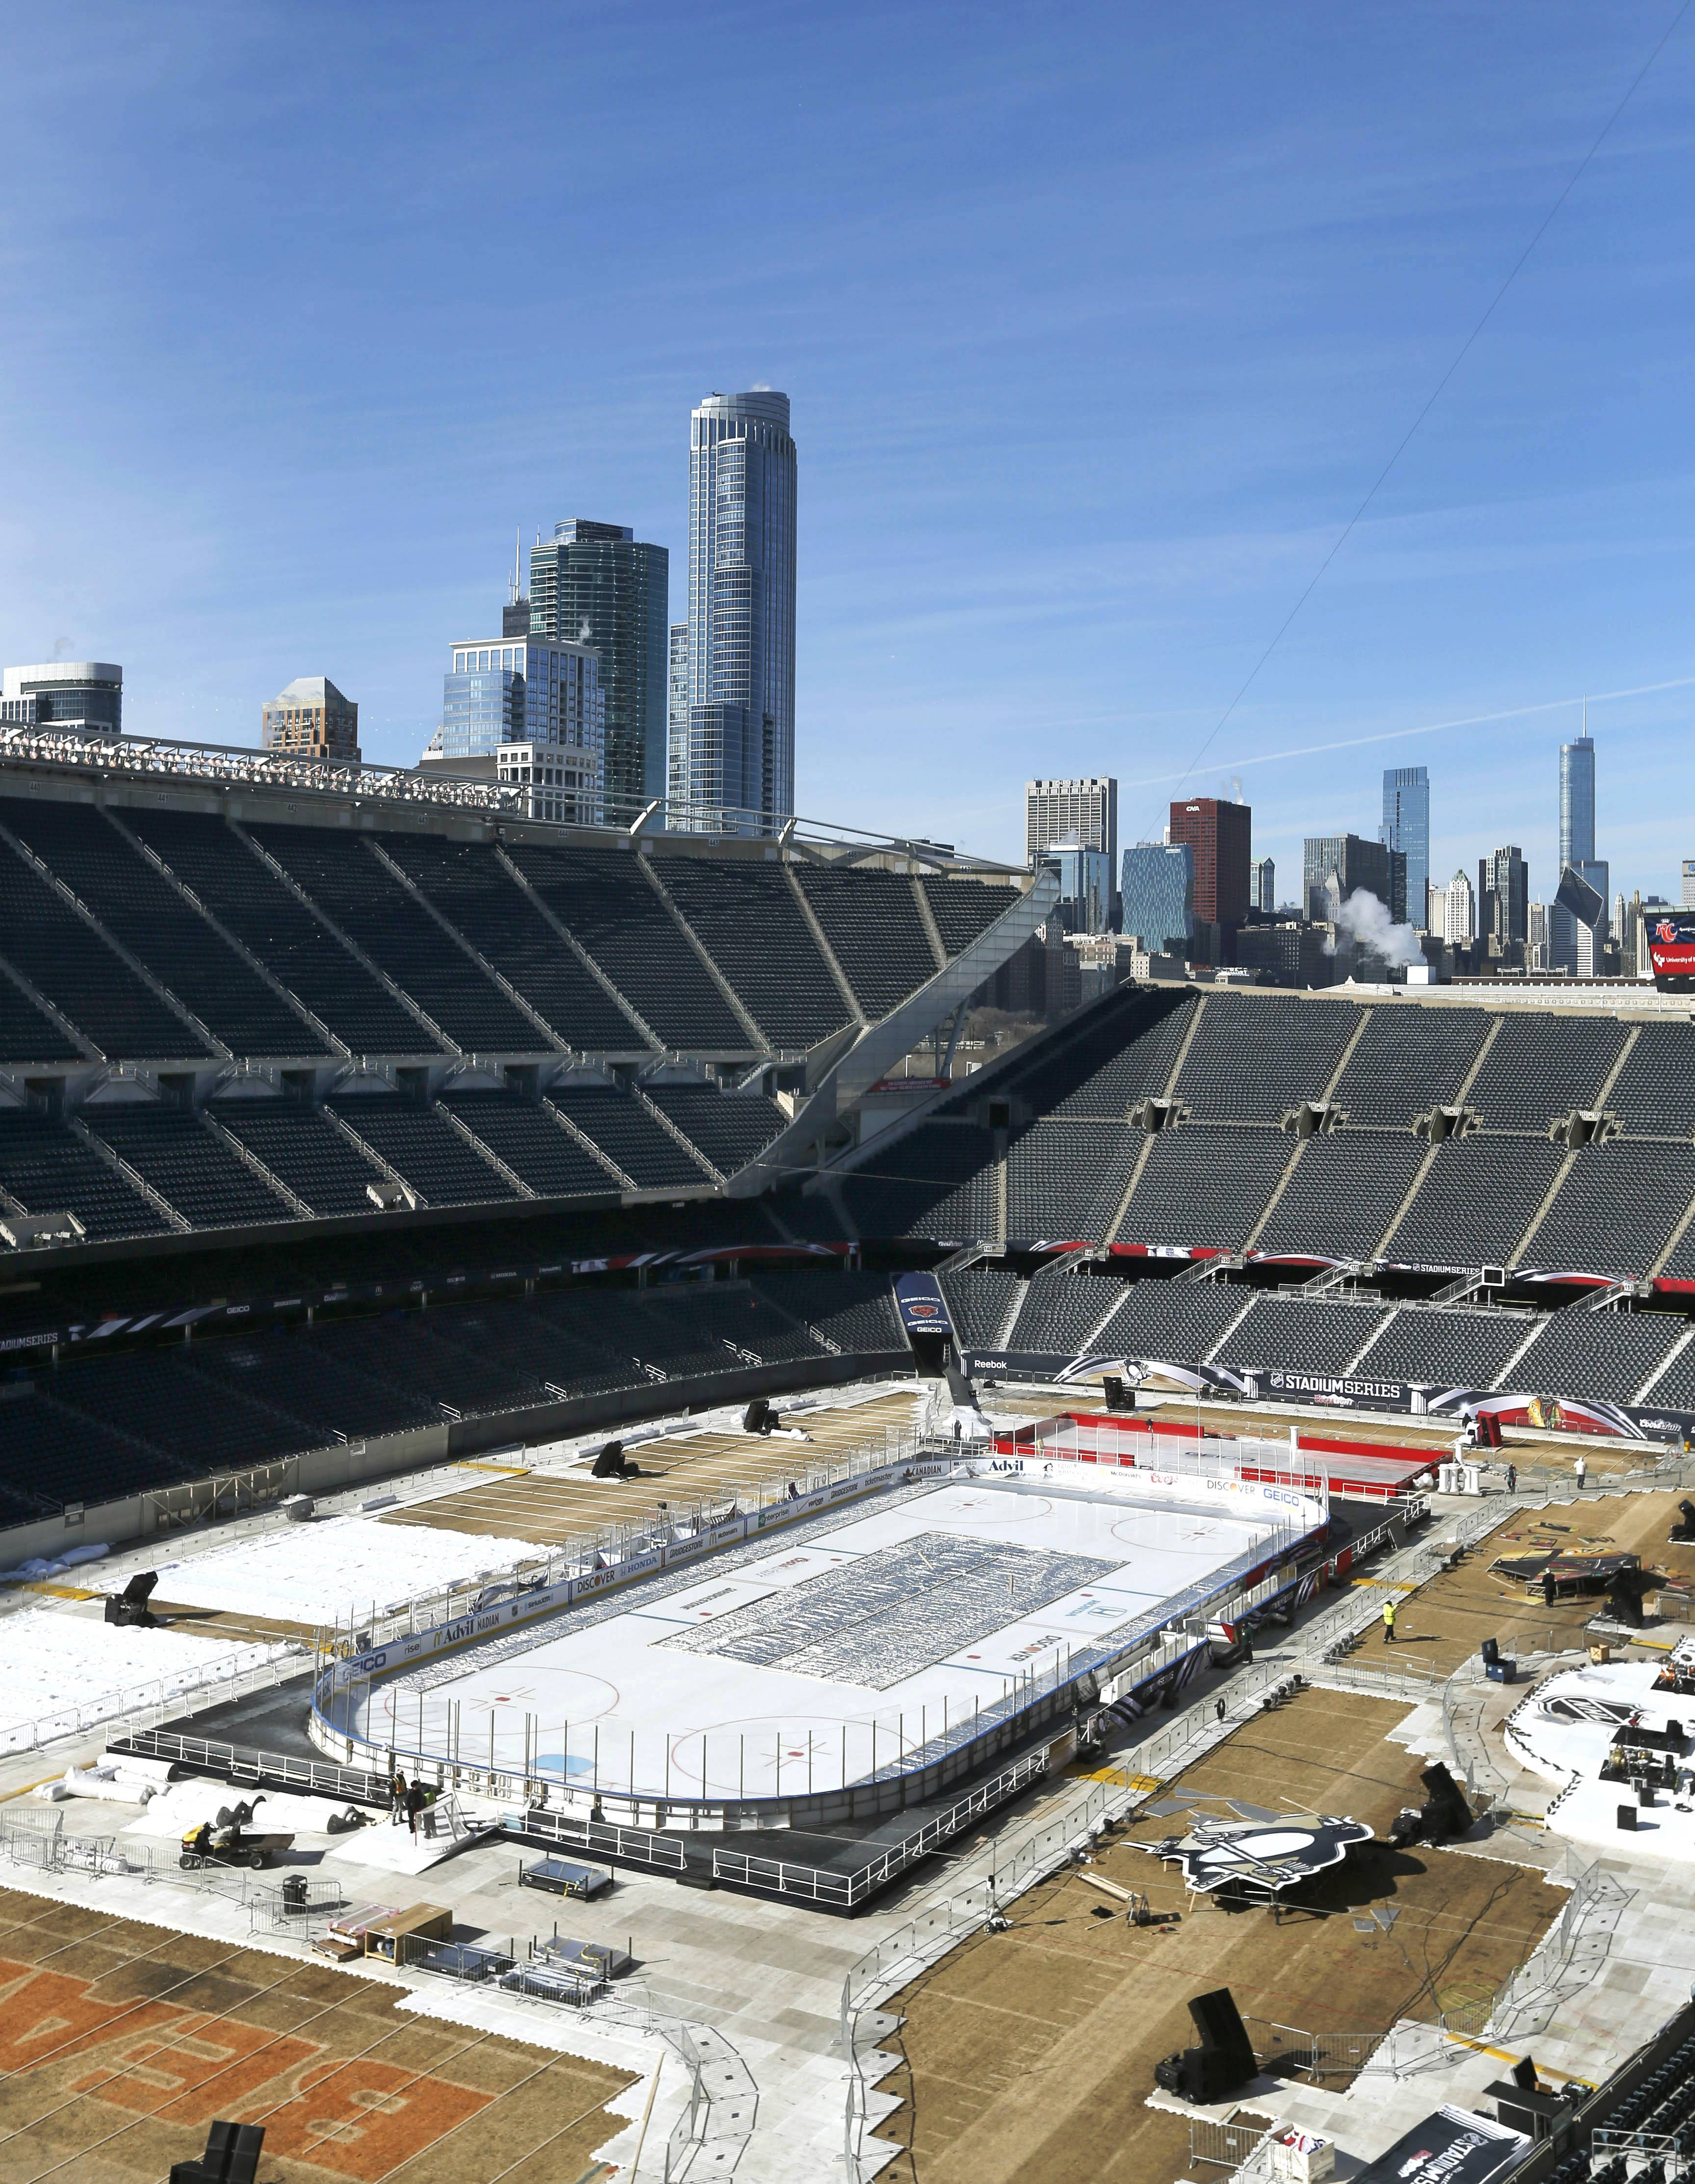 Work continues Thursday to transform Soldier Field for Saturday's Stadium Series NHL hockey game between the Blackhawks and Pittsburgh Penguins.